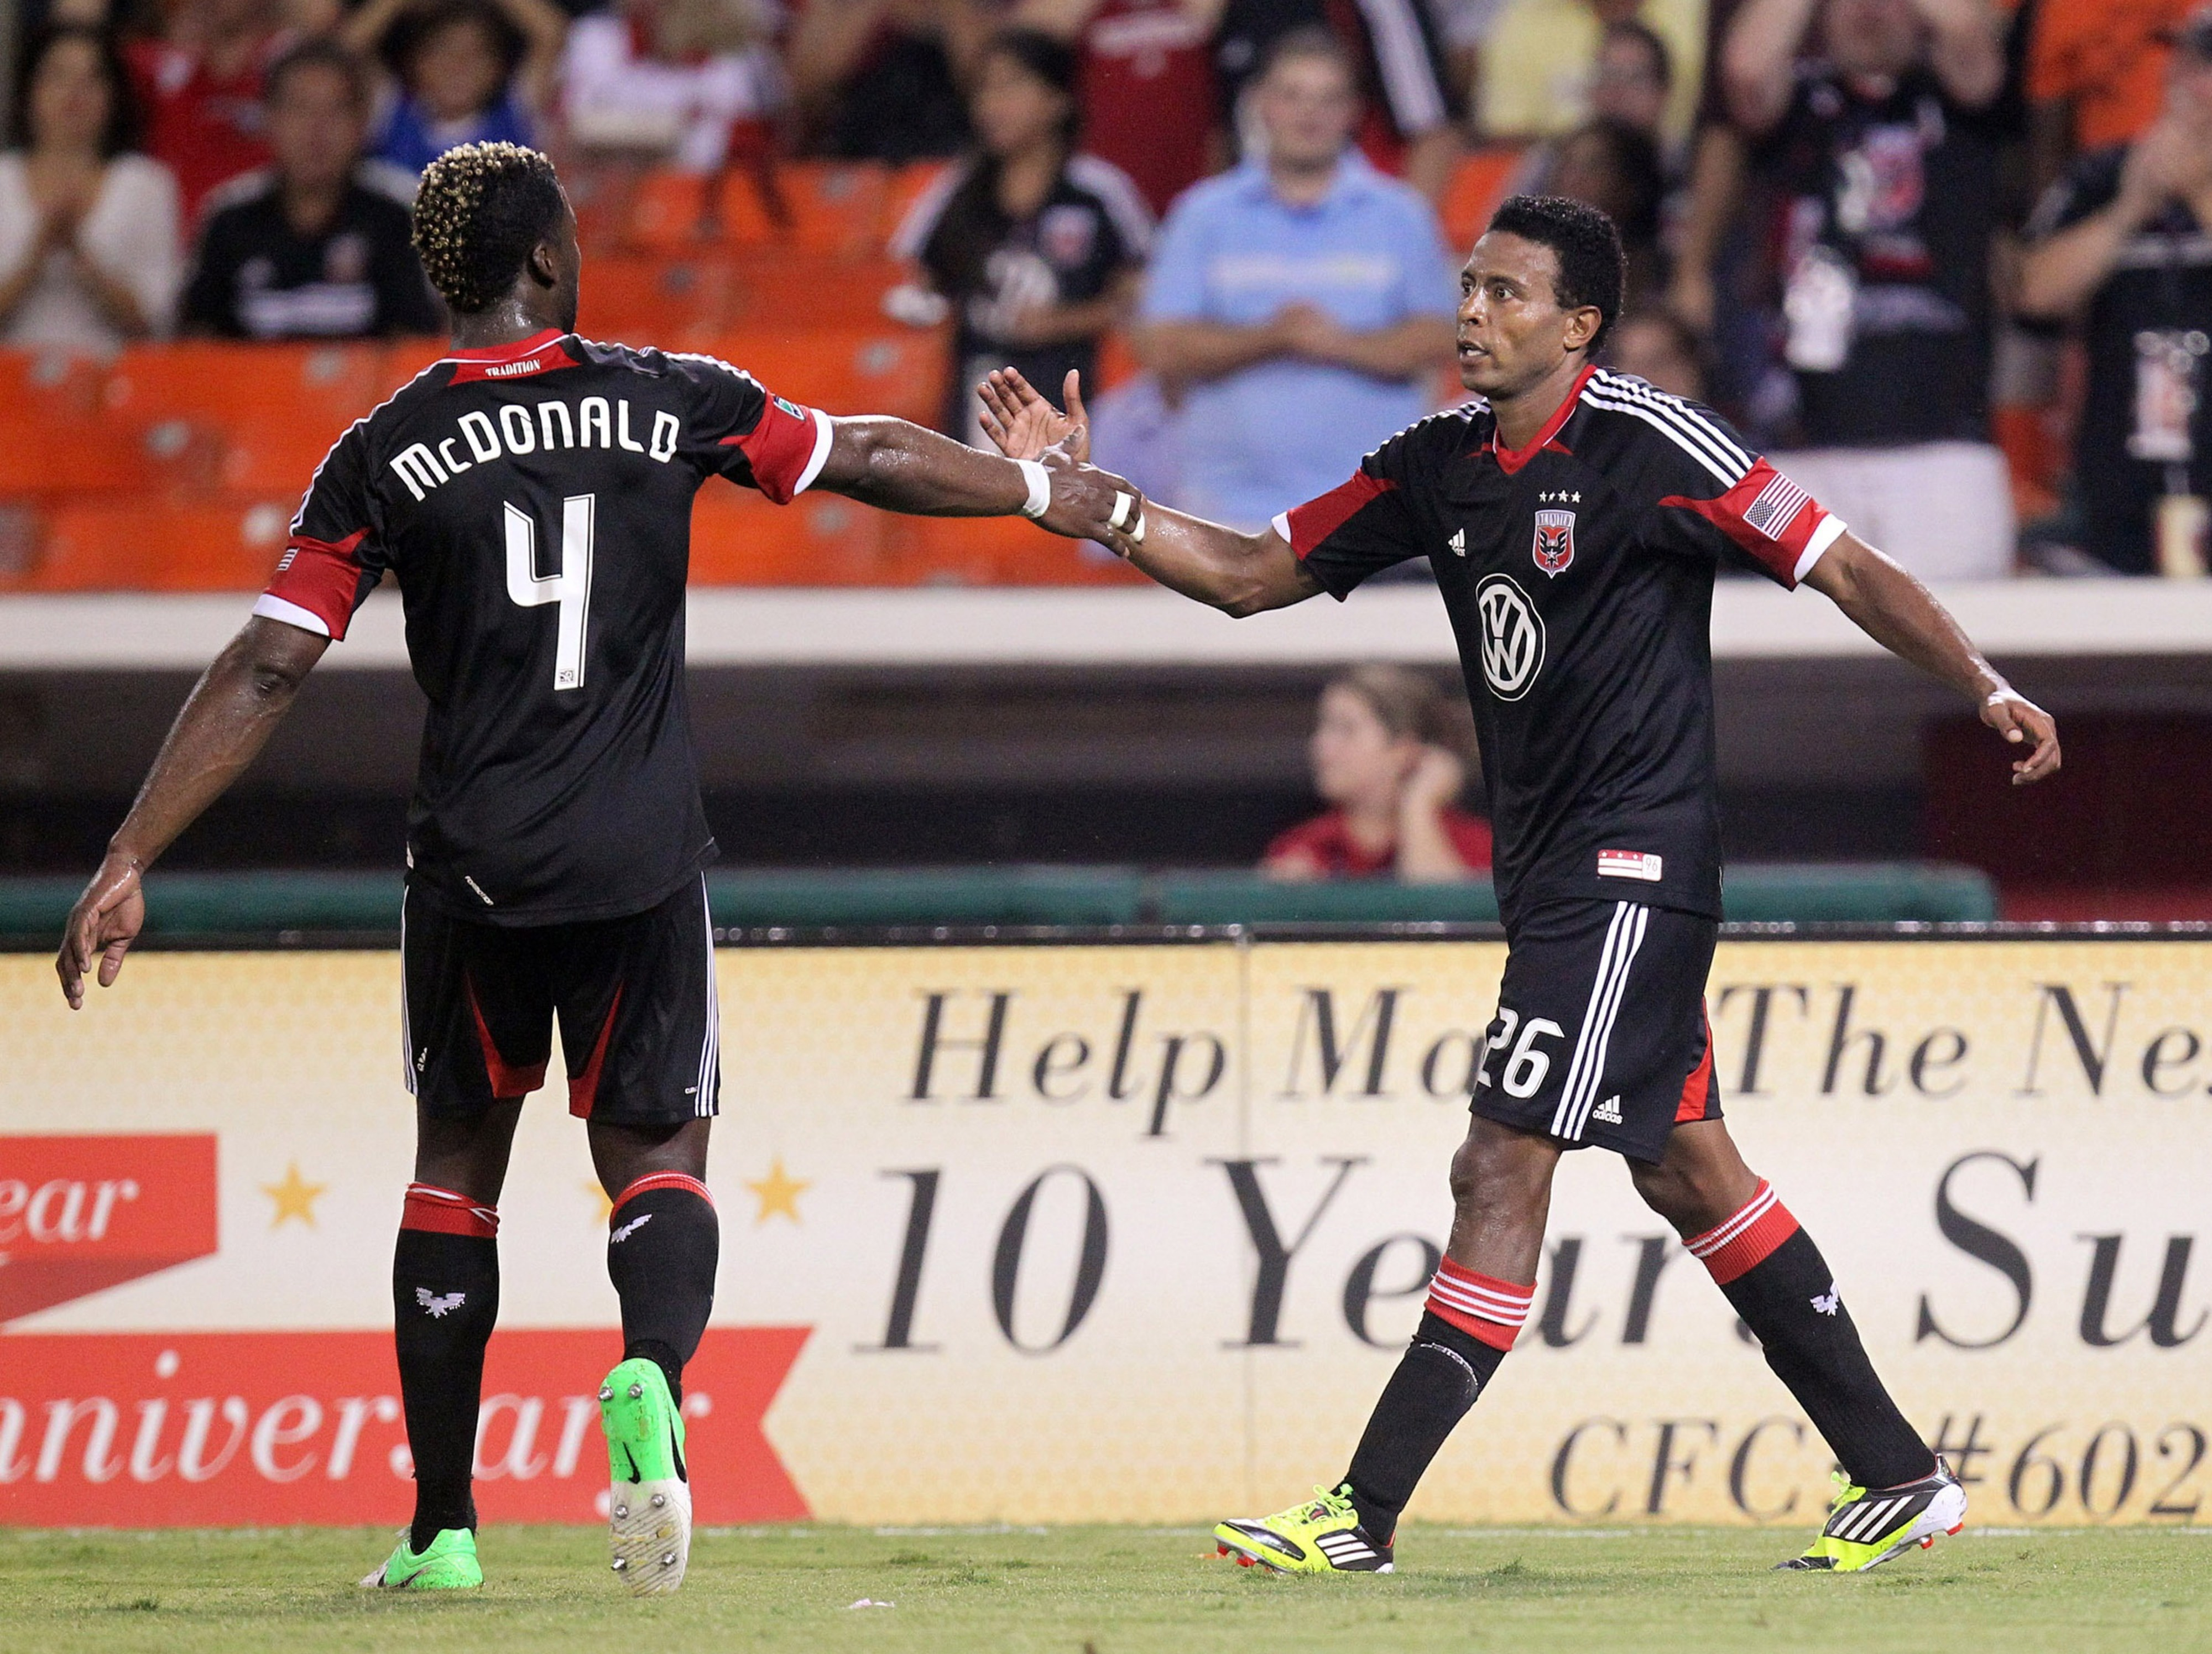 D.C. United put together yet another great performance at RFK Stadium